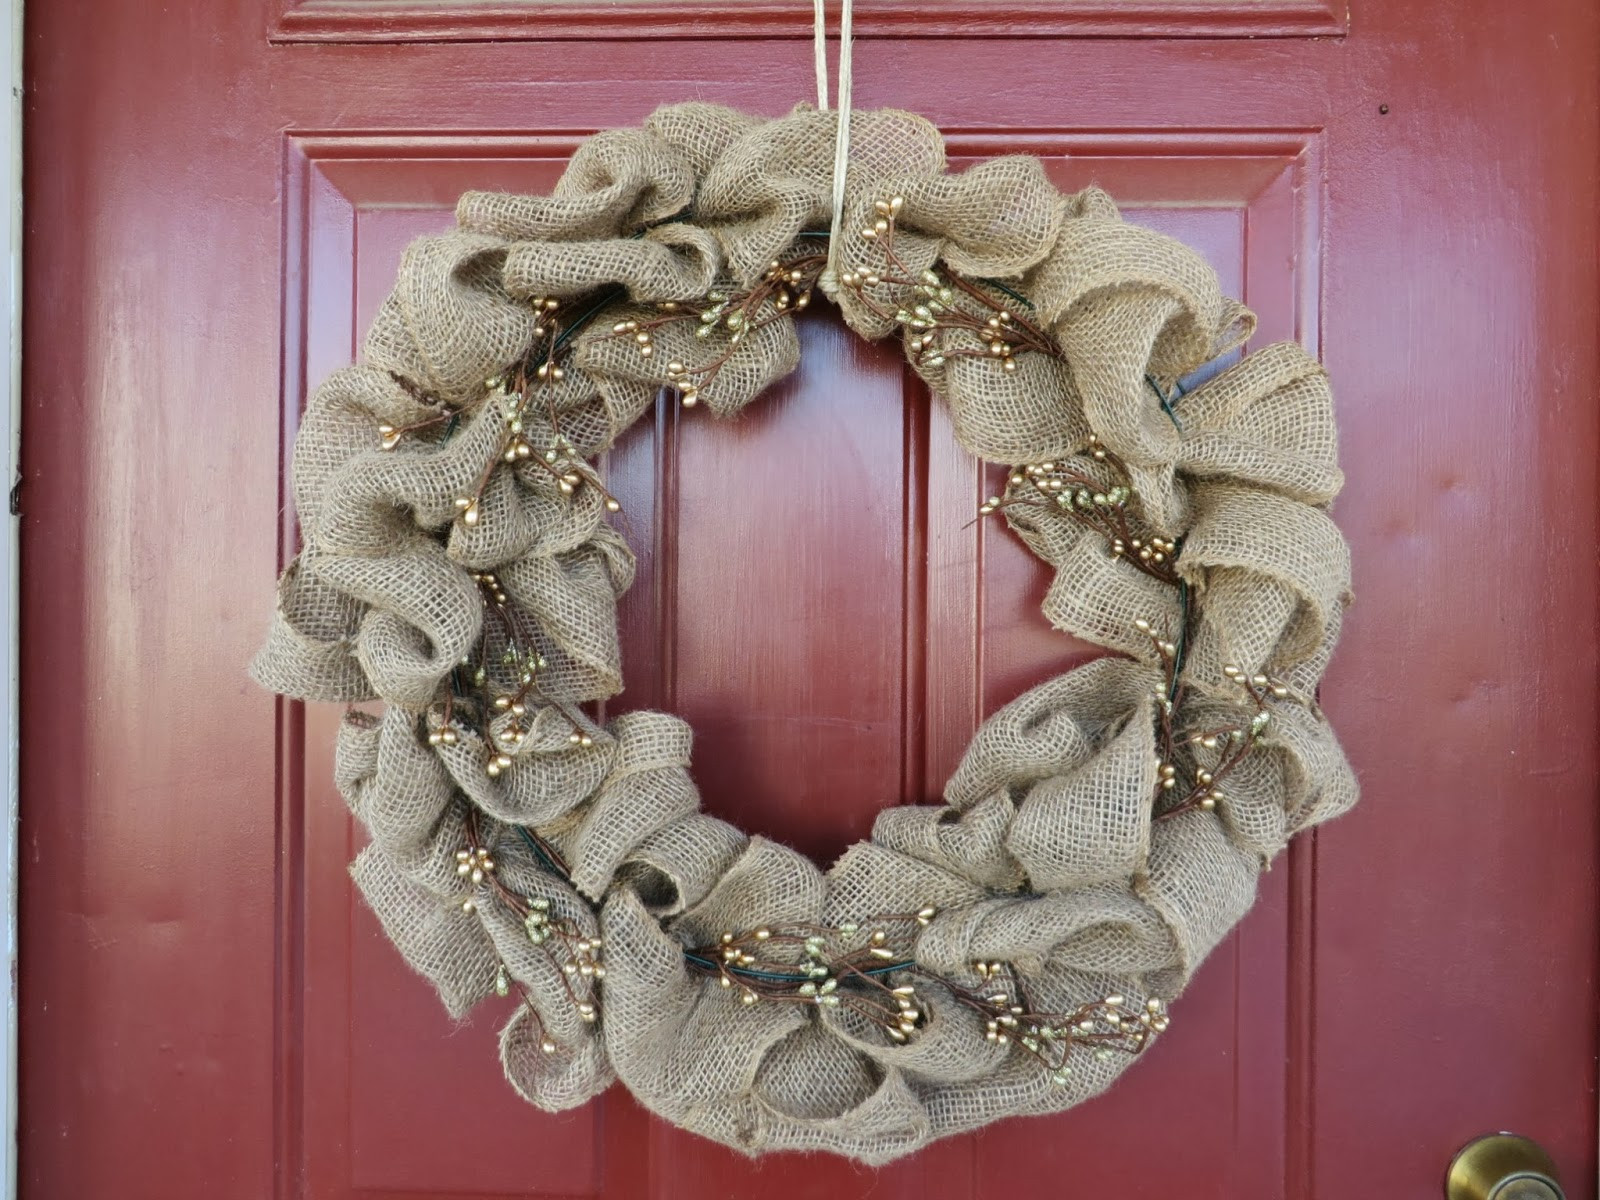 Best ideas about Burlap Wreath DIY . Save or Pin Little Snippets DIY Easiest Burlap Wreath Tutorial Now.